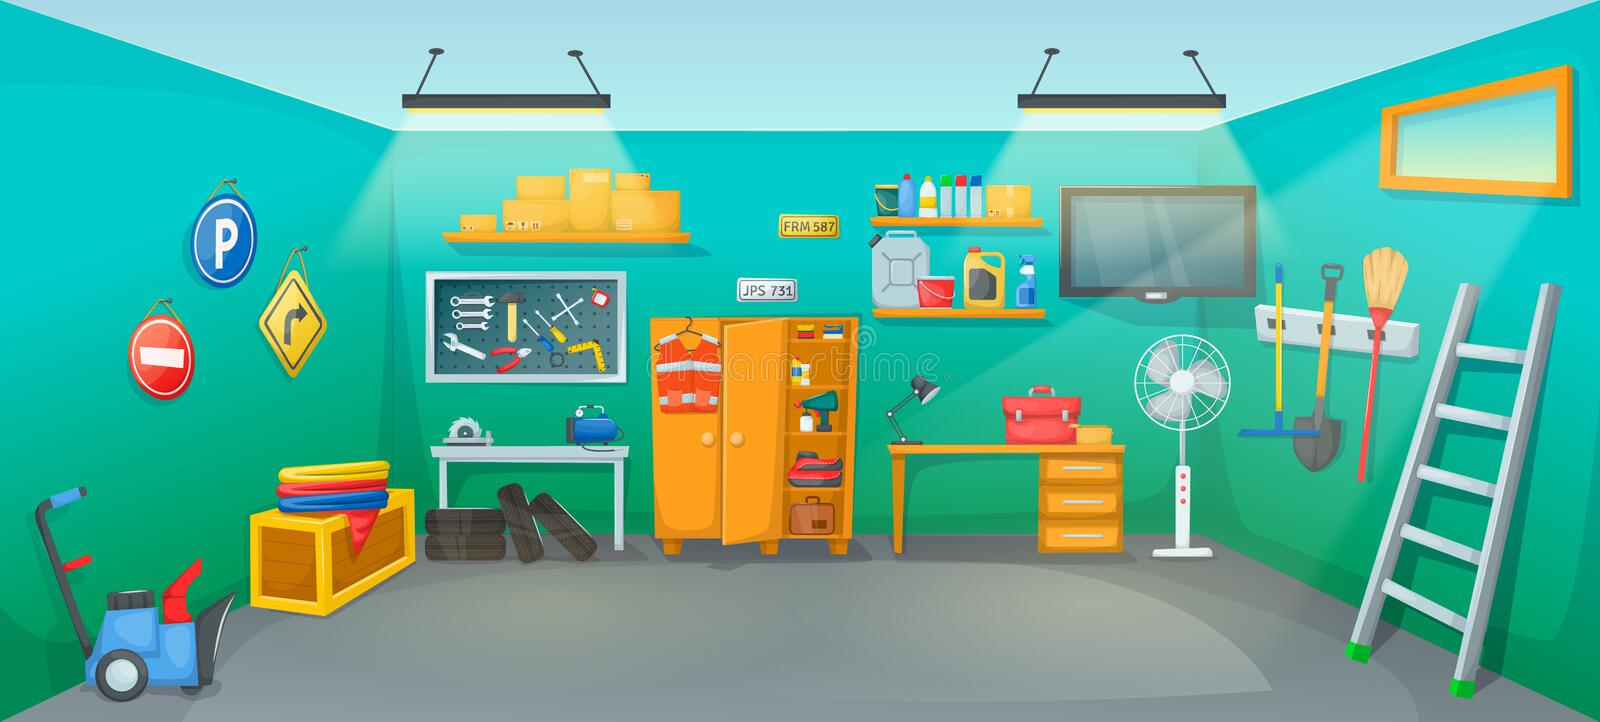 Garage interior room with tools furniture inventory equipment. Workplace on car repair with auto equipment, tires, jerrican, tools, boxes, wrenches stock illustration